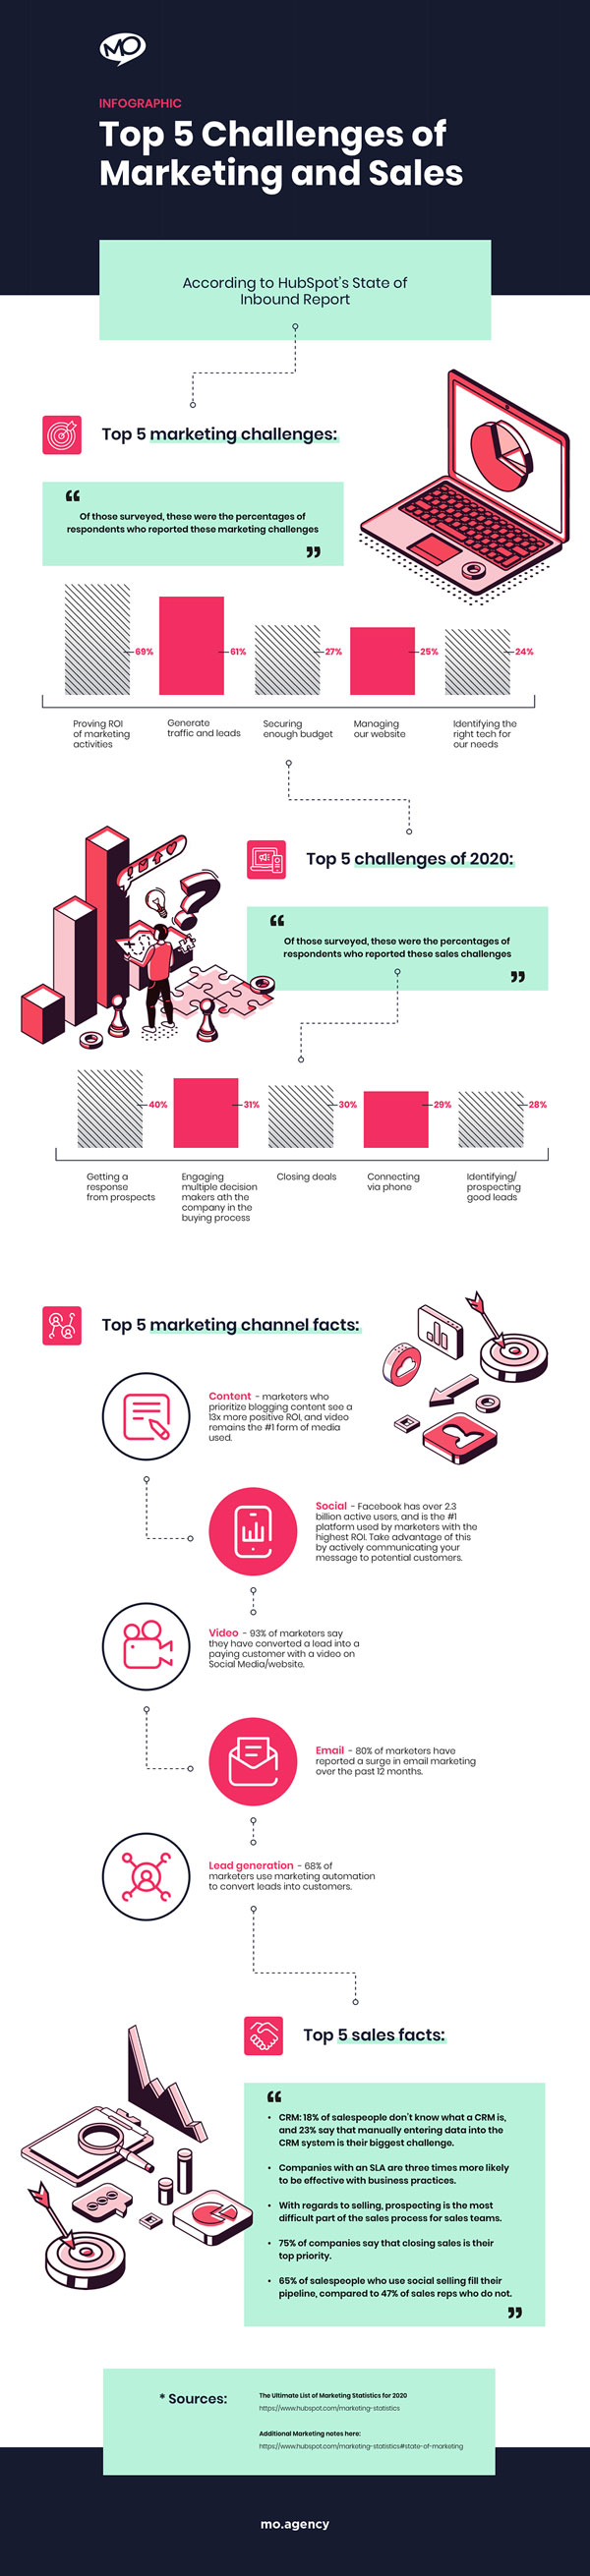 MO---Top-5-Challenges-of-Marketing-and-Sales---Infographic---20200424-(1)